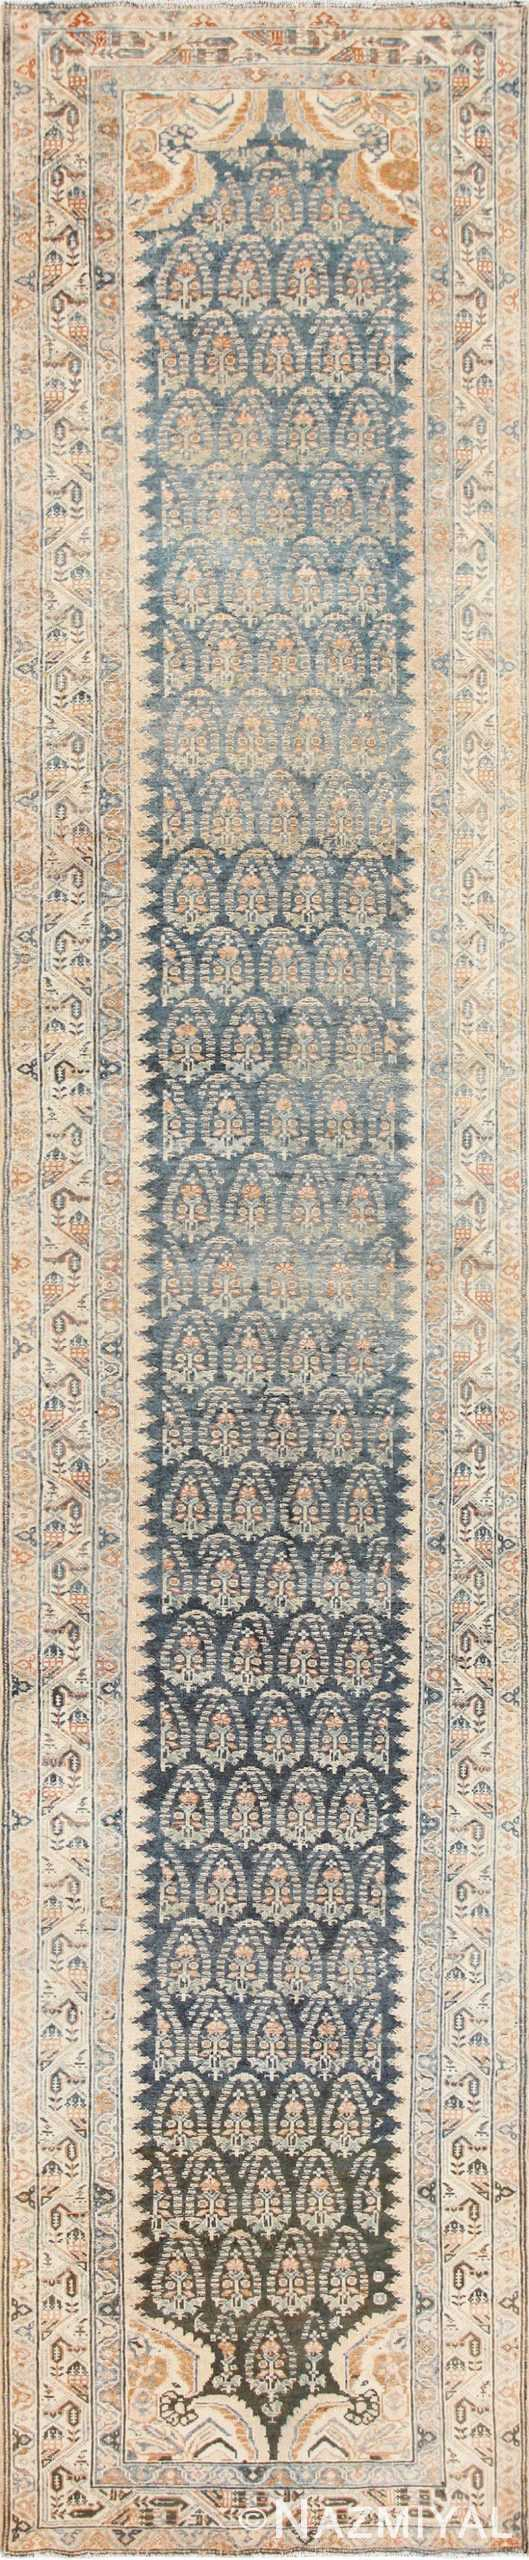 Antique Paisley Design Persian Malayer Runner Rug 48824 Nazmiyal